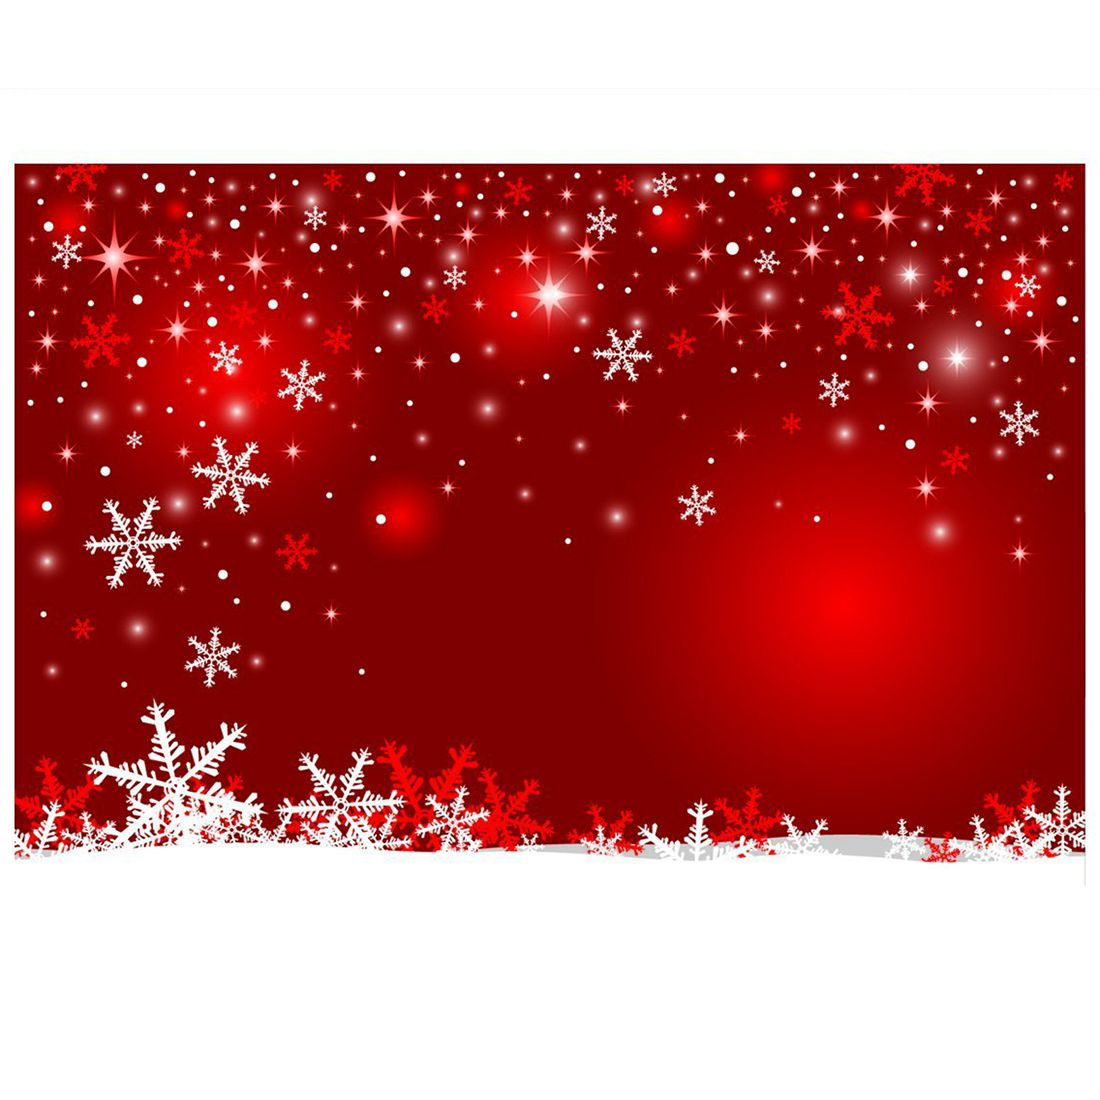 Us 8 72 28 Off 7x5ft Red Christmas Background Wall Christmas Snowflake Backdrop Photography In Background From Consumer Electronics On Aliexpress